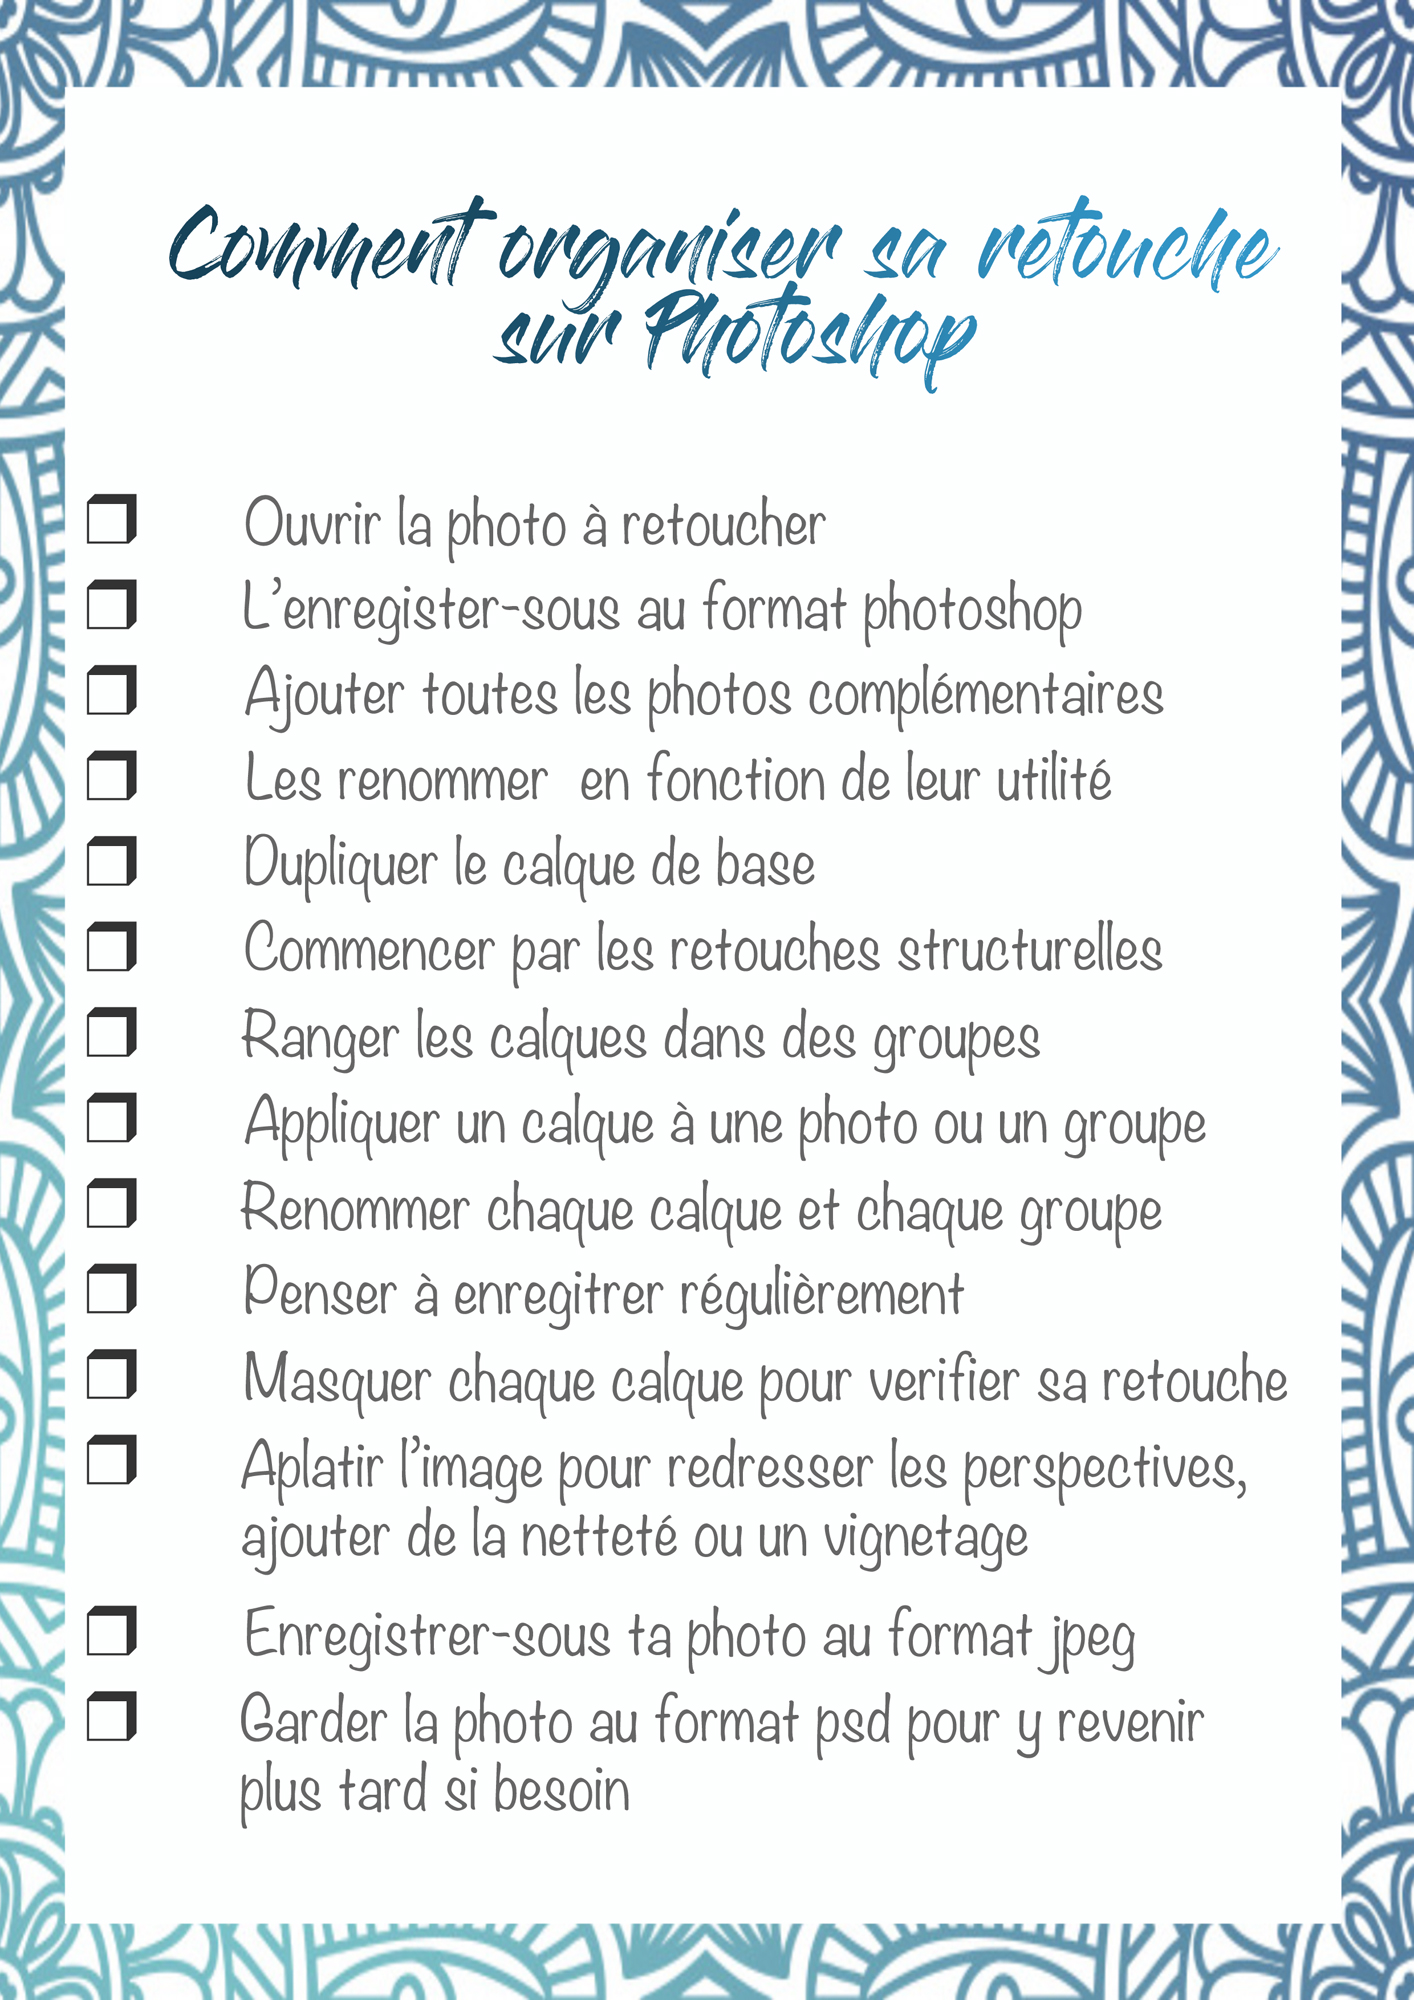 comment organiser sa retouche sur photoshop